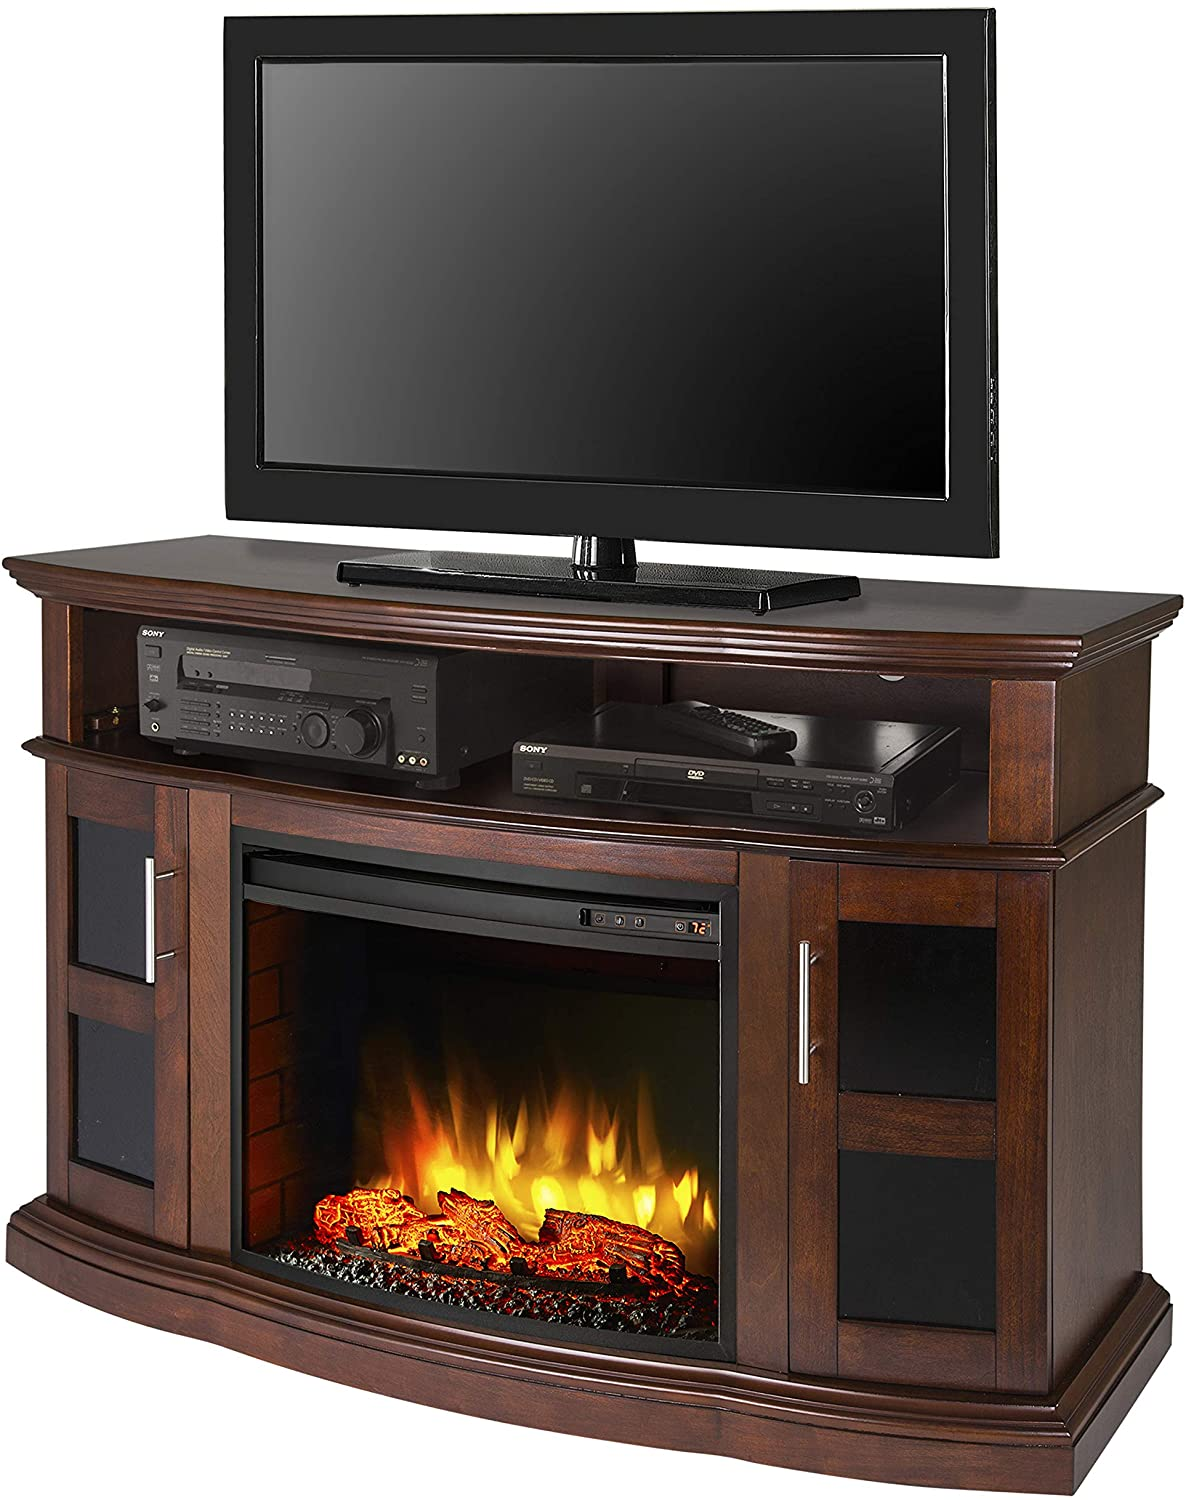 Cherry Fireplace Tv Stand Lovely Pleasant Hearth Rochester Media Electric Fireplace Cherry